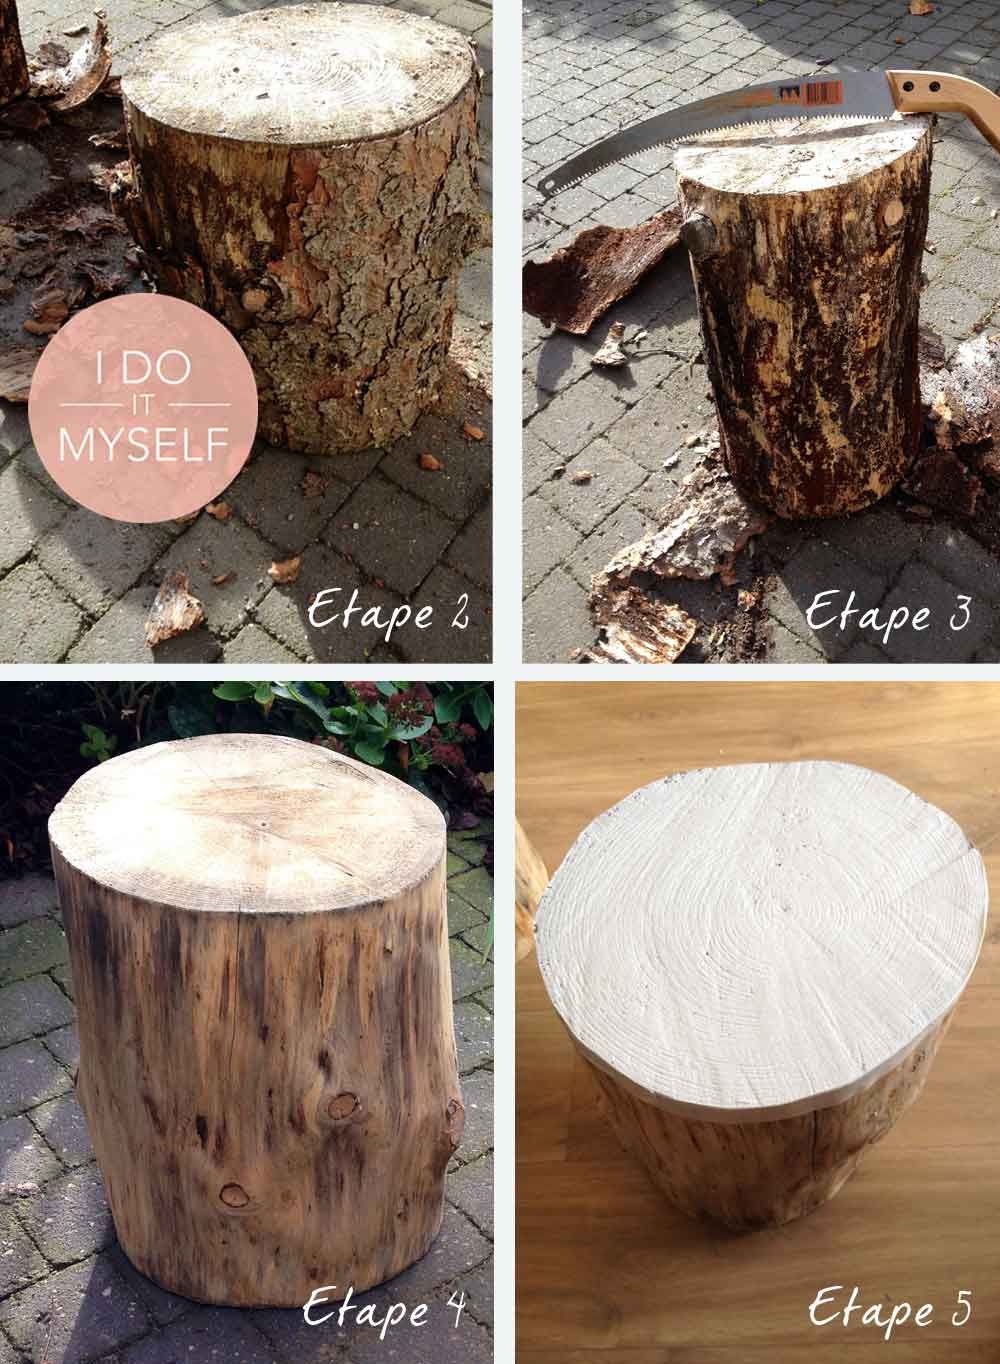 Mobilier Tronc D Arbre diy 7 : tronc d'intérieur - i do it myself